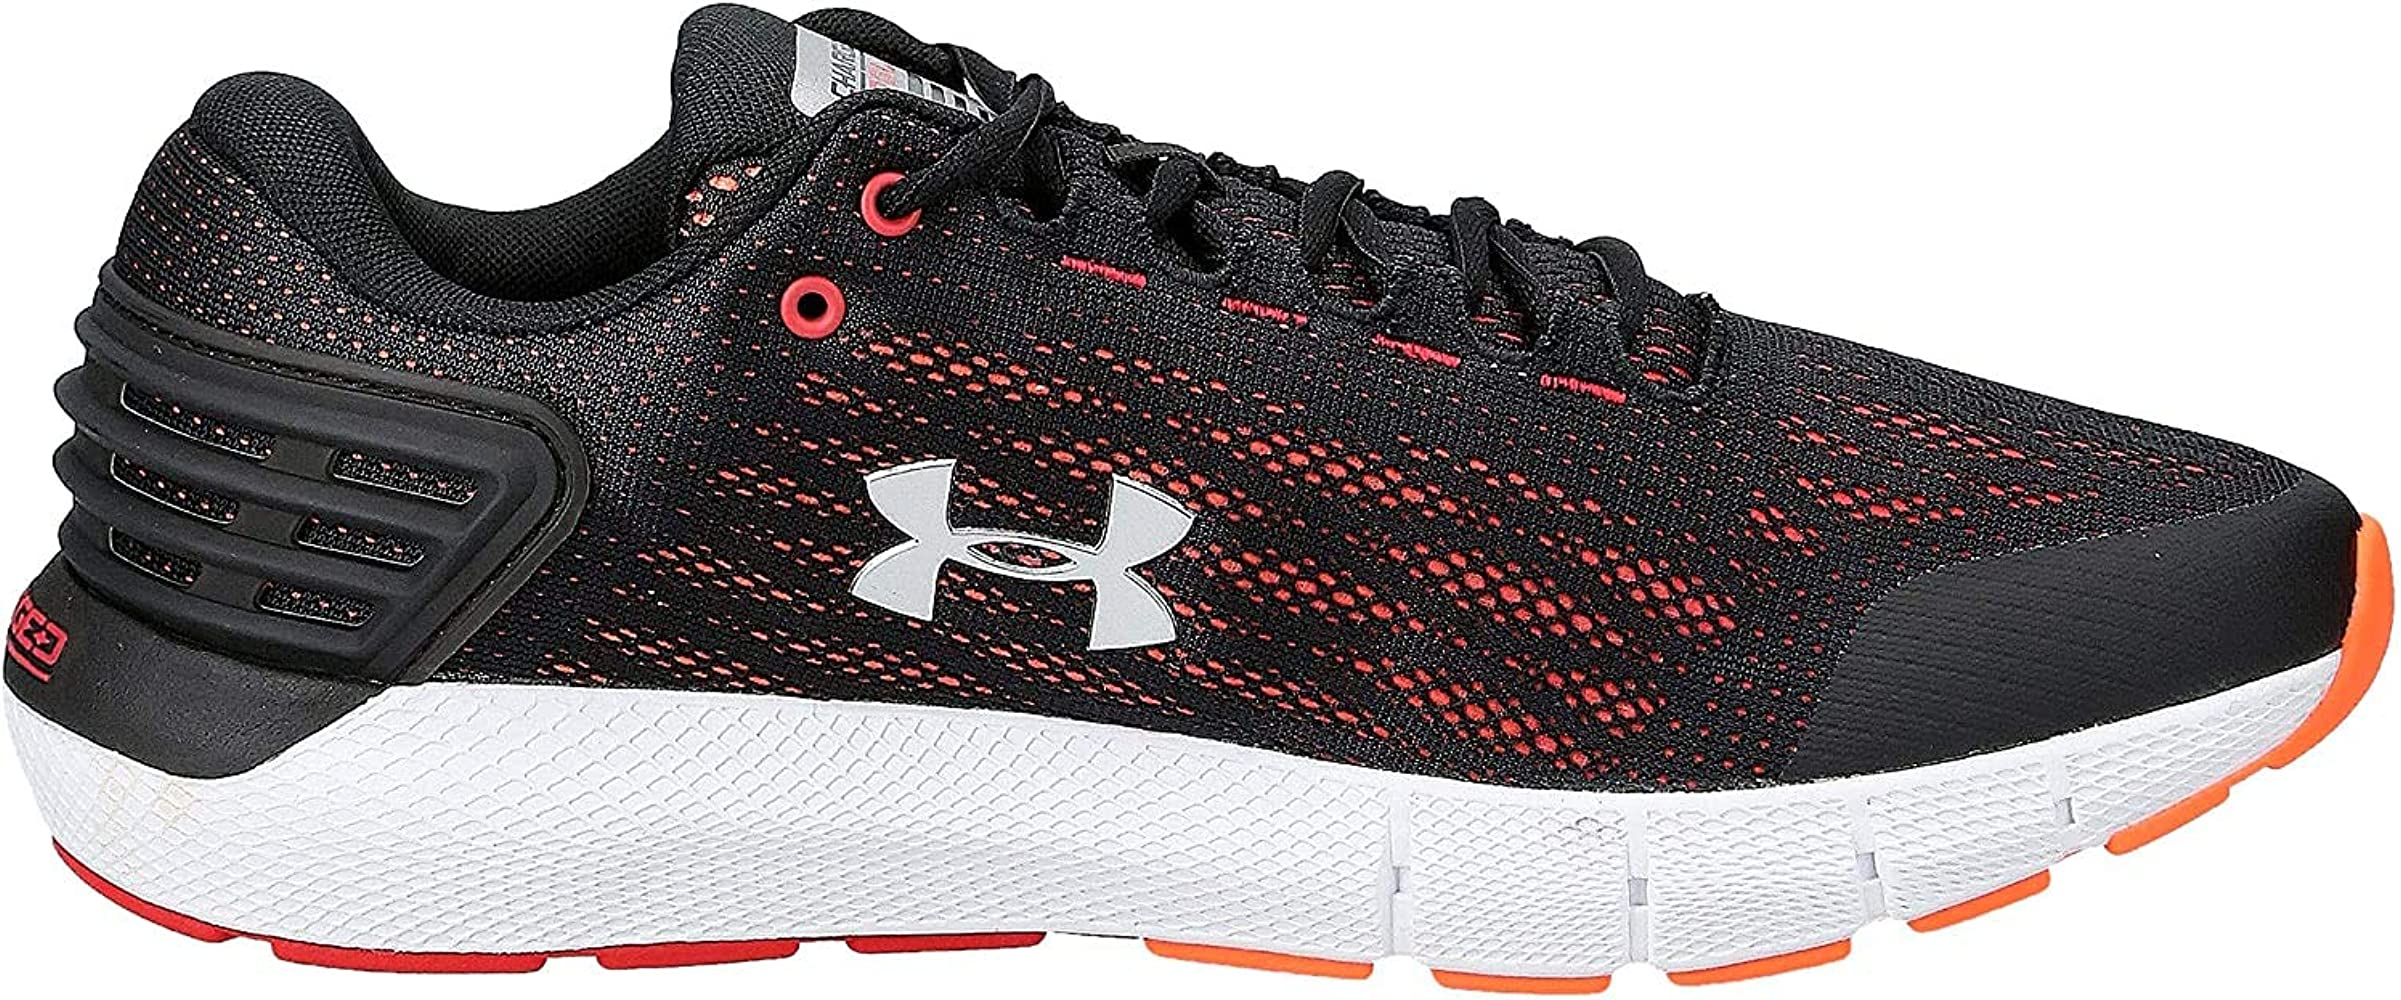 Under Armour Charged Rogue, Zapatillas para Correr de Diferentes ...